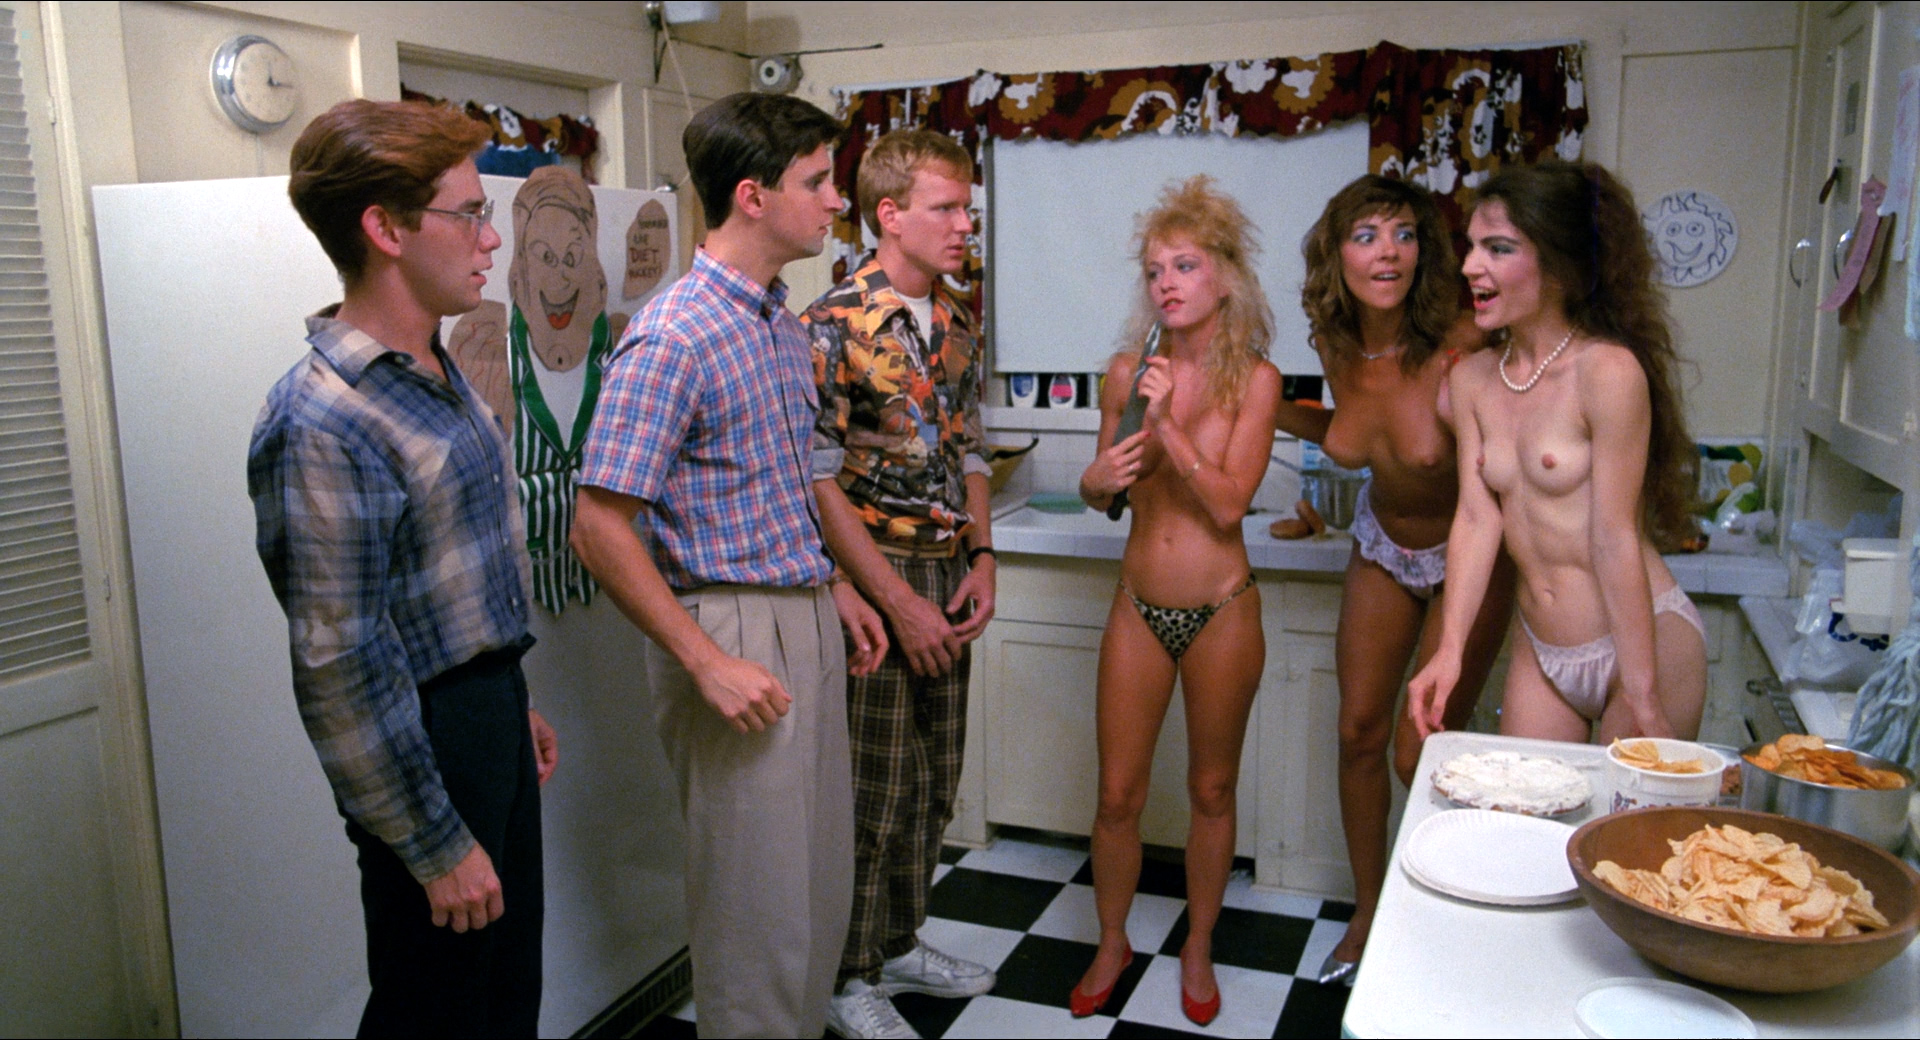 Michelle Bauer nude bush, Linnea Quigley and Brinke Stevens nude and wet - Nightmare Sisters (1988) HD1080p (9)